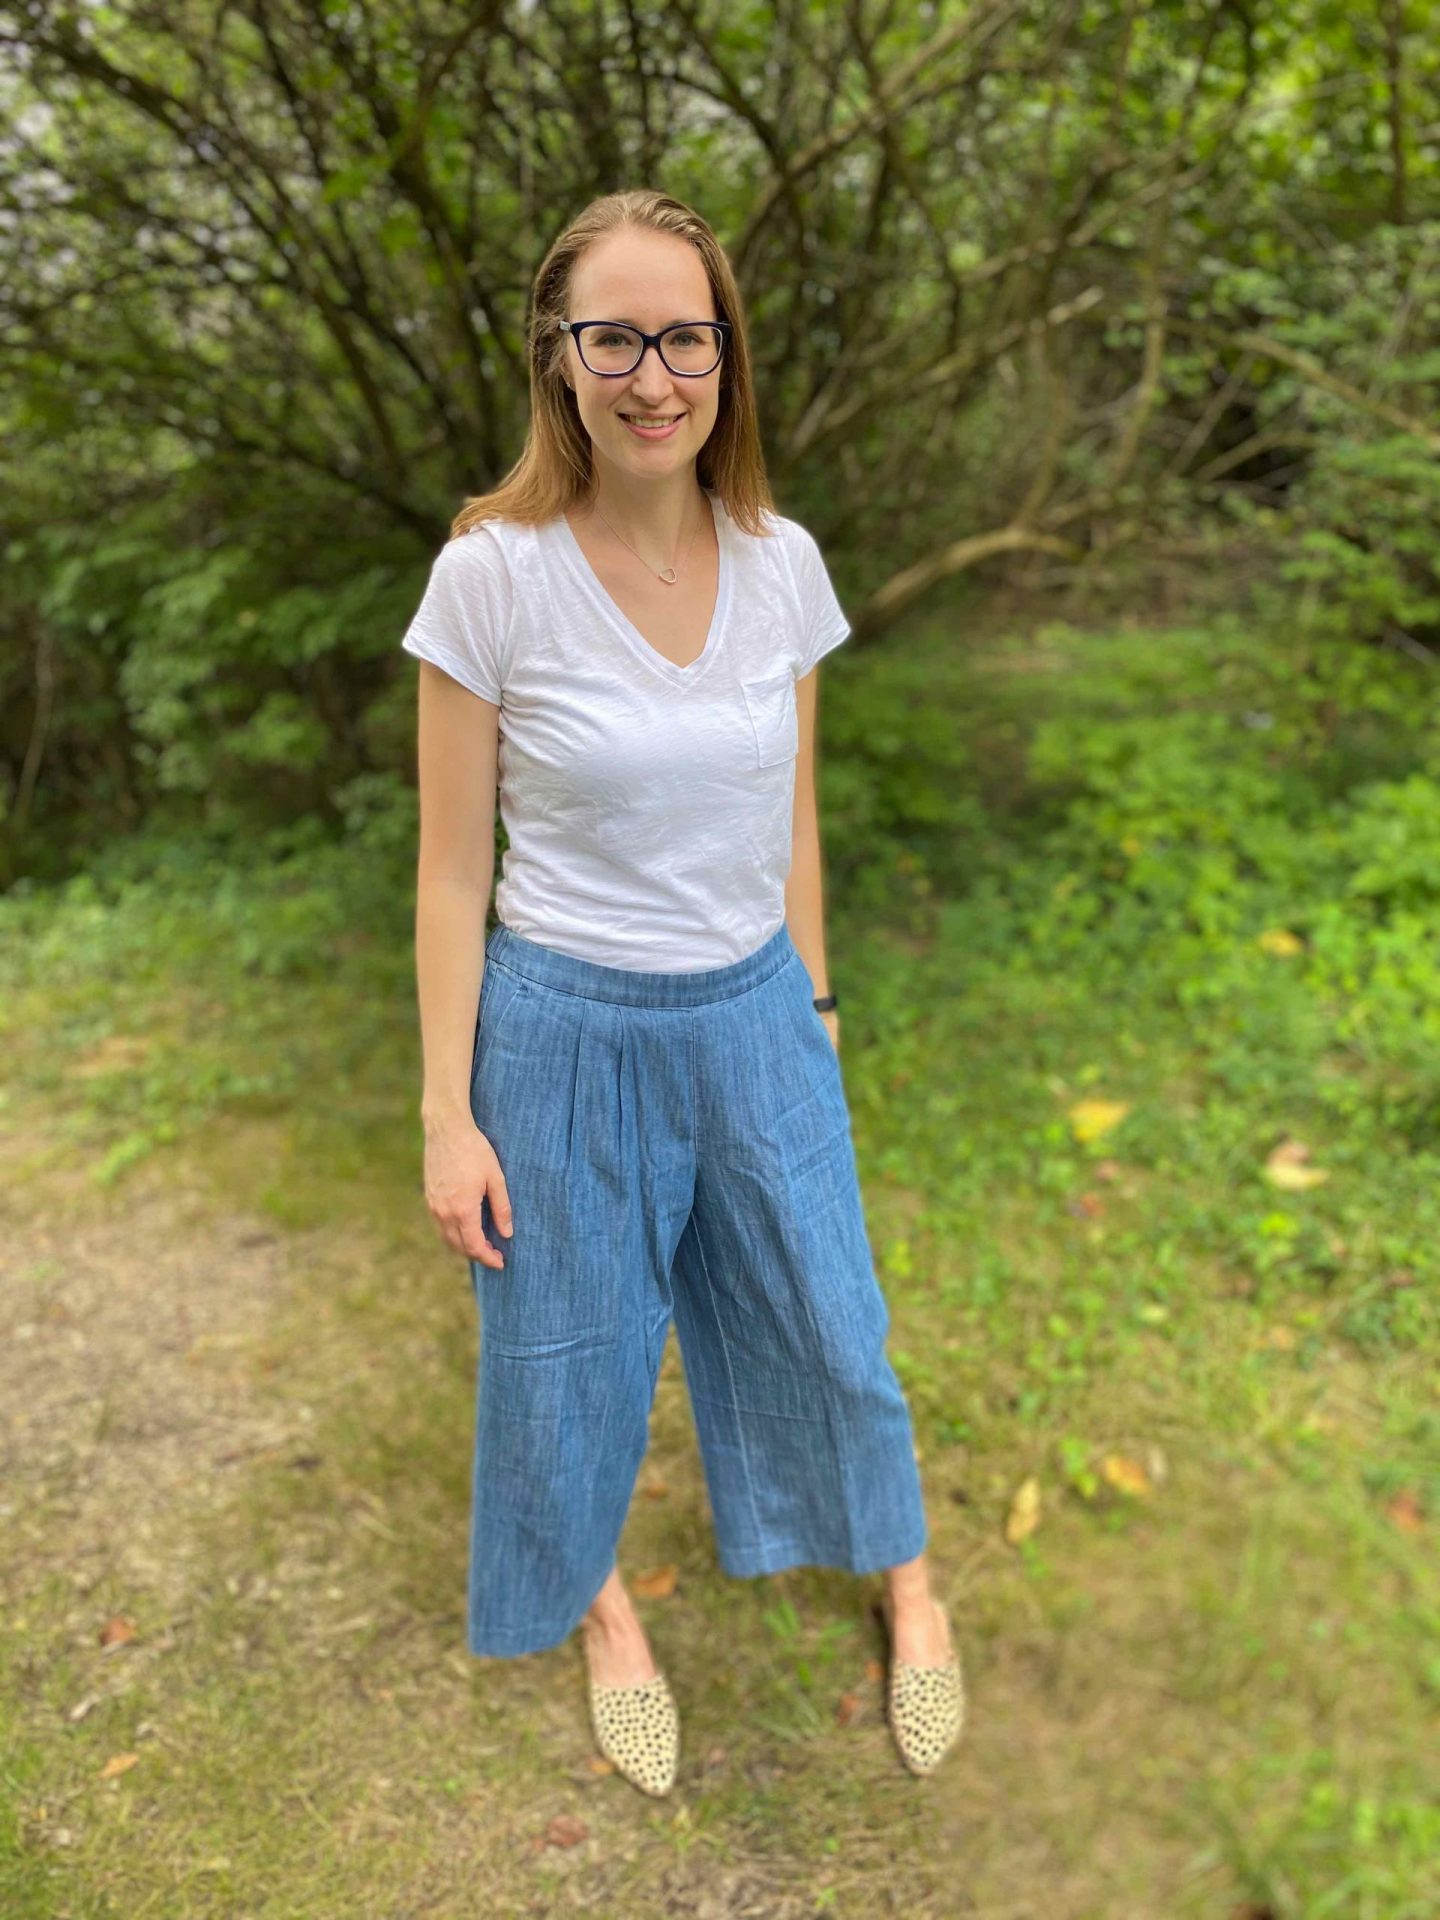 Wide Leg Pant Outfit Idea | The Spectacular Adventurer